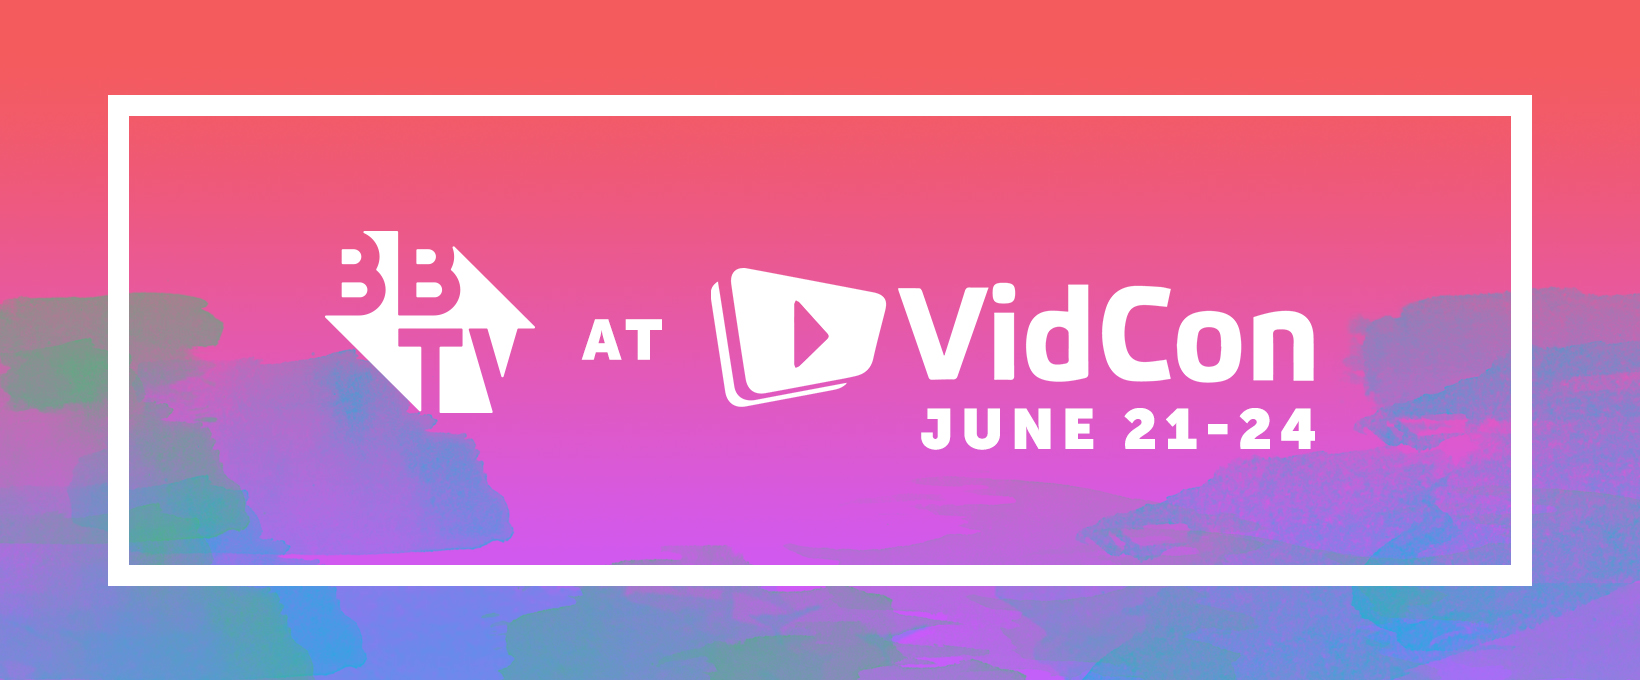 VidCon - Facebook Banner-Red